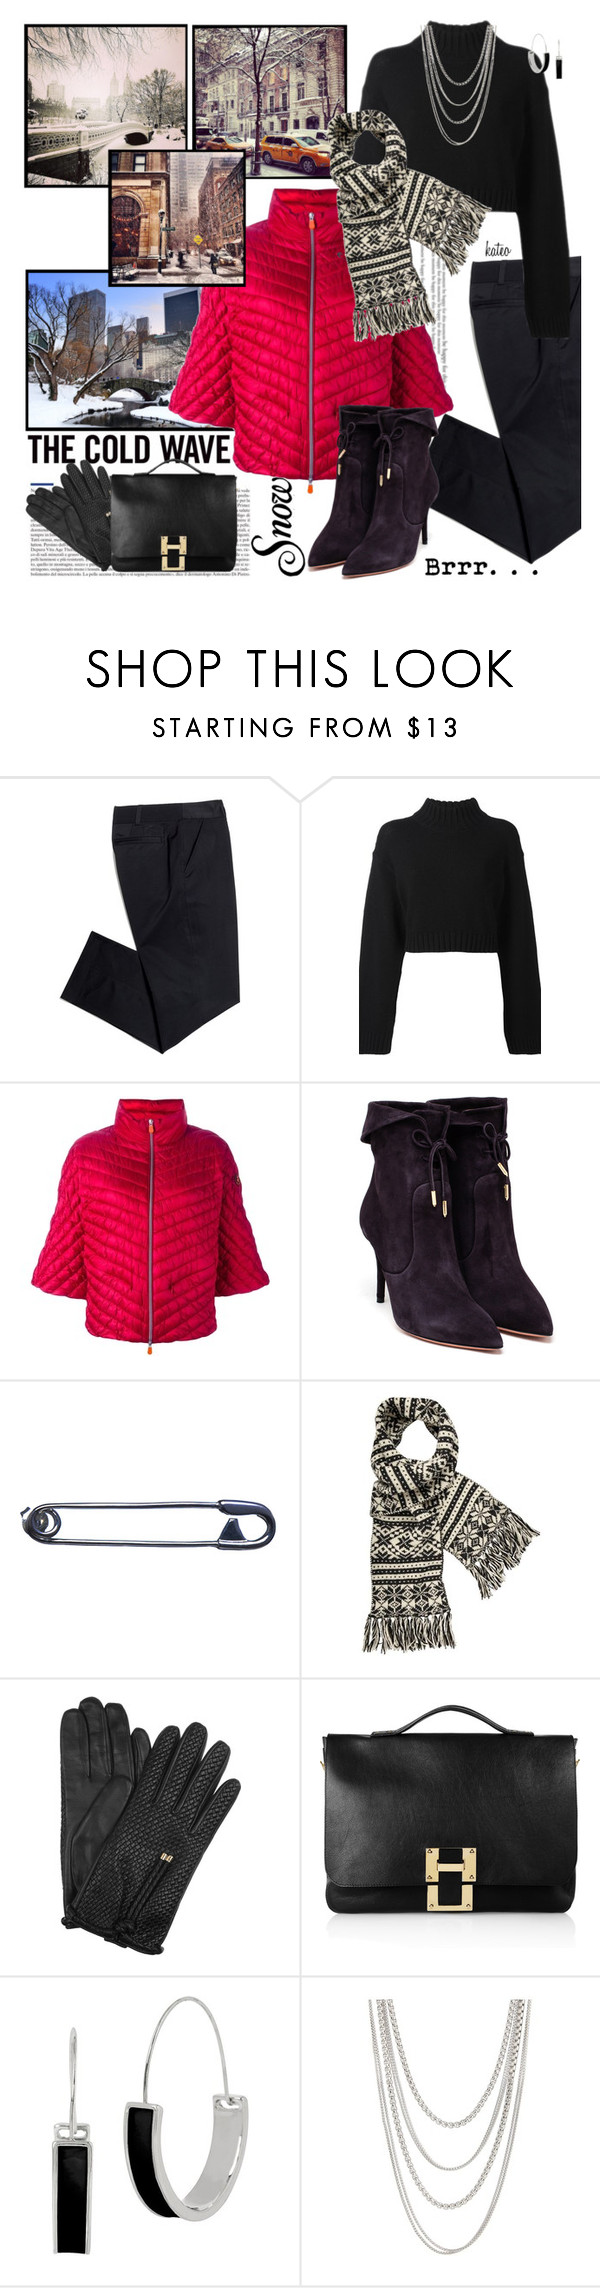 """""""Pretty Winter Puffer"""" by kateo ❤ liked on Polyvore featuring Tory Burch, DKNY, Save the Duck, Aquazzura, Carrie K., Aubin & Wills, Burberry, Sophie Hulme, Kenneth Cole and FOSSIL"""